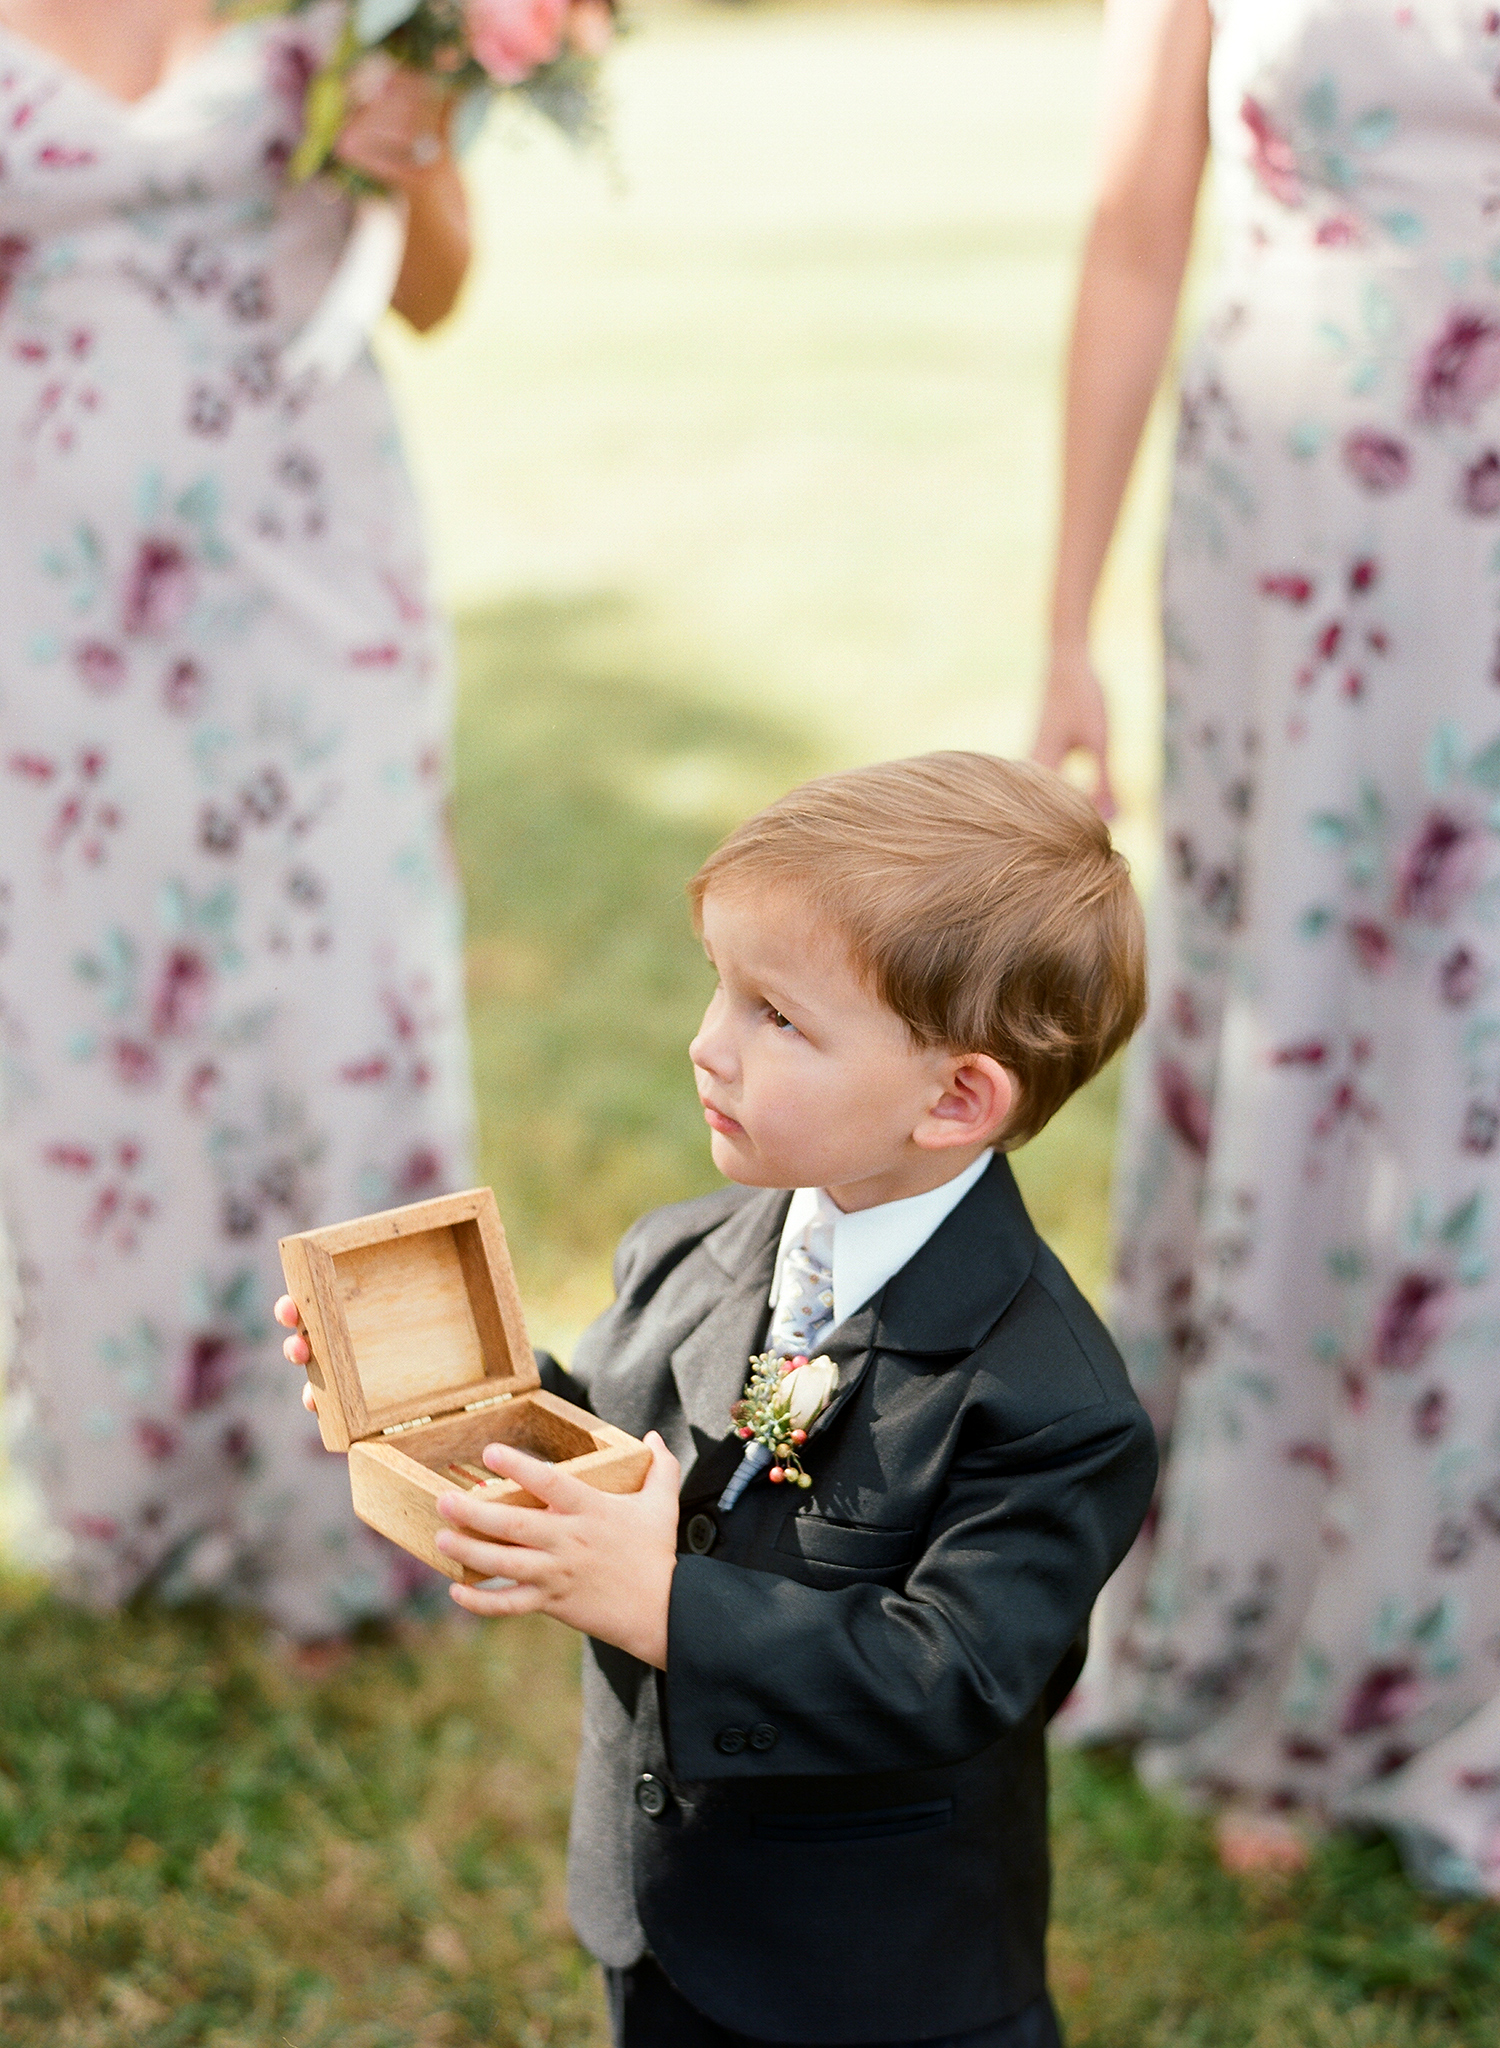 jen geoff wedding ring bearer